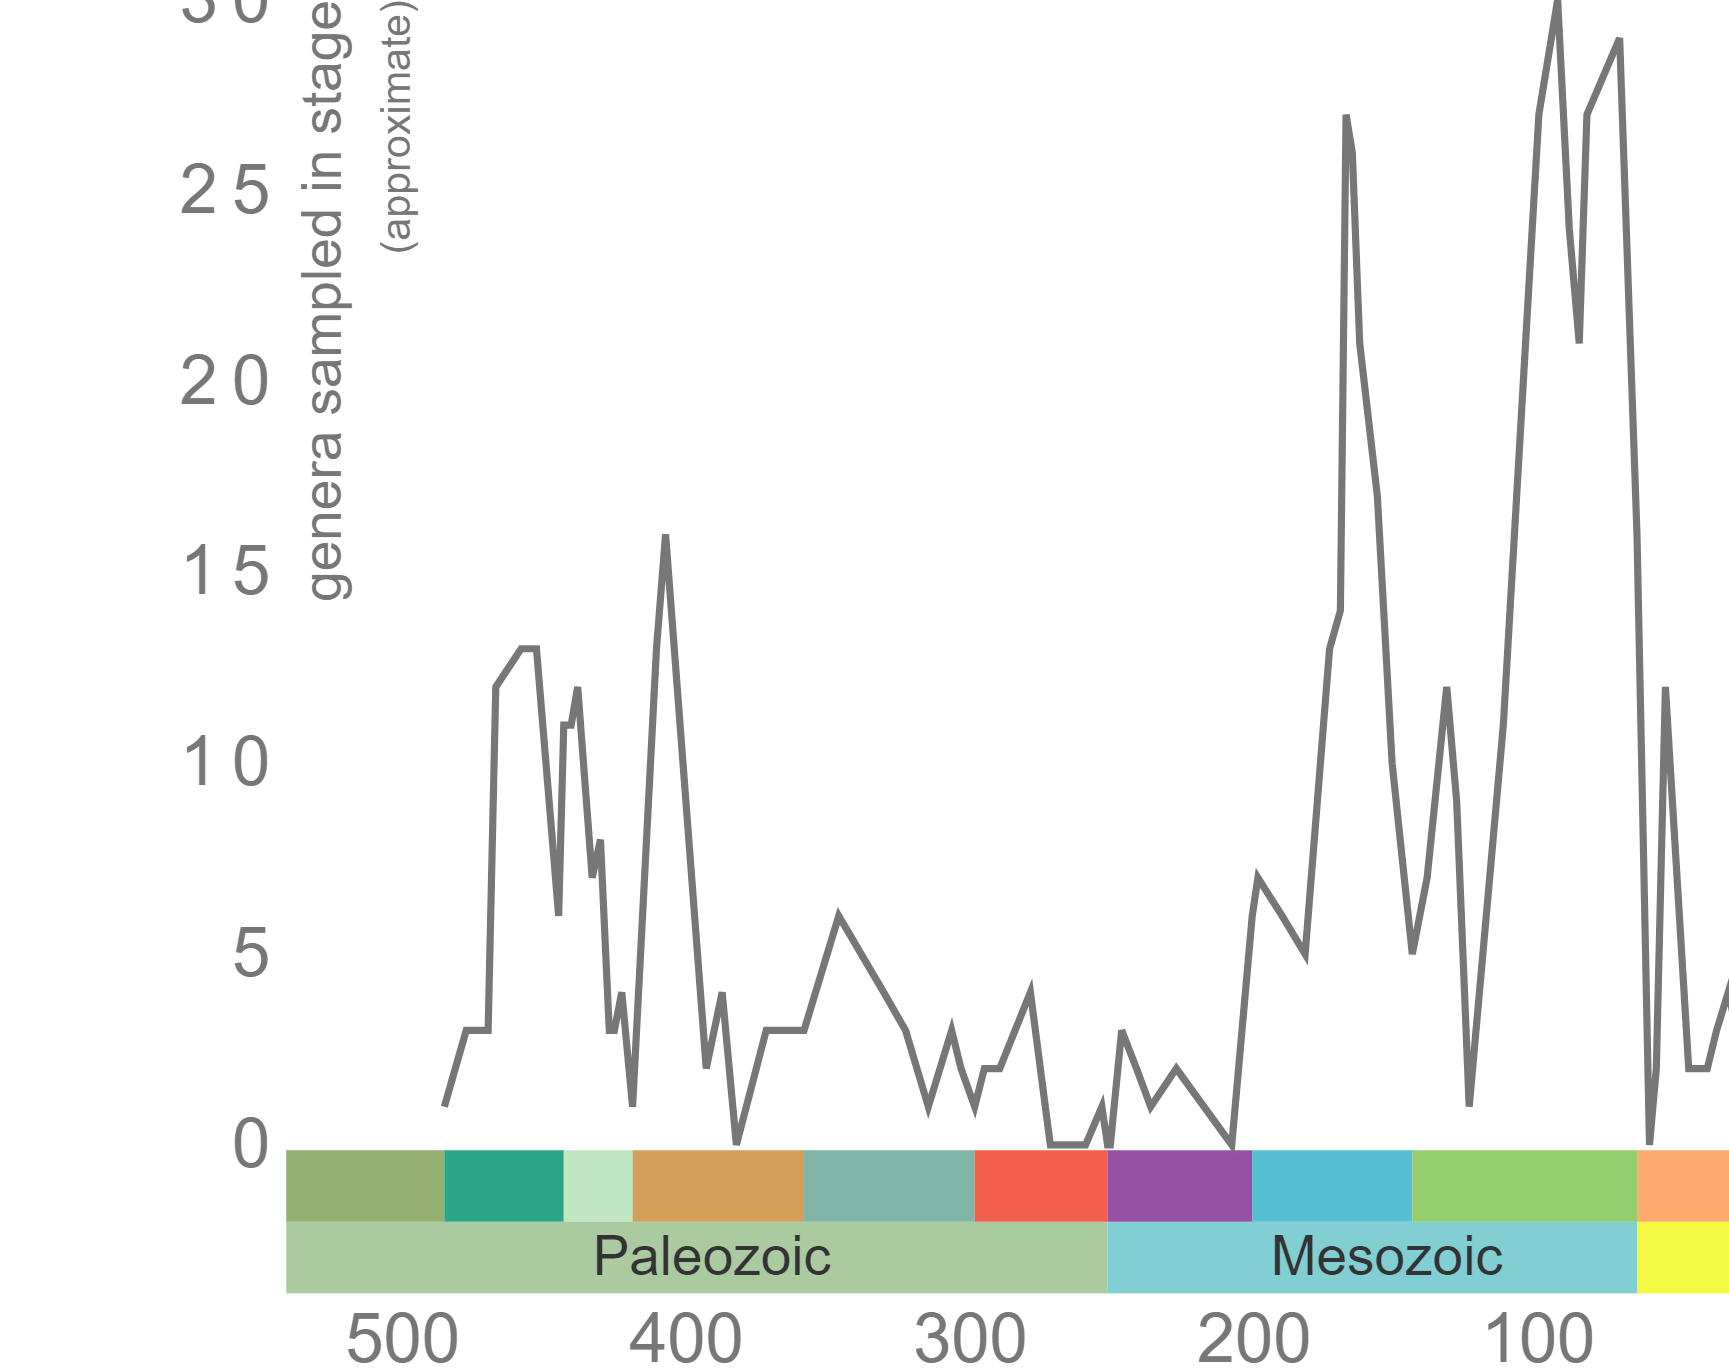 Graph of Phanerozoic diversity curve for Asteroidea